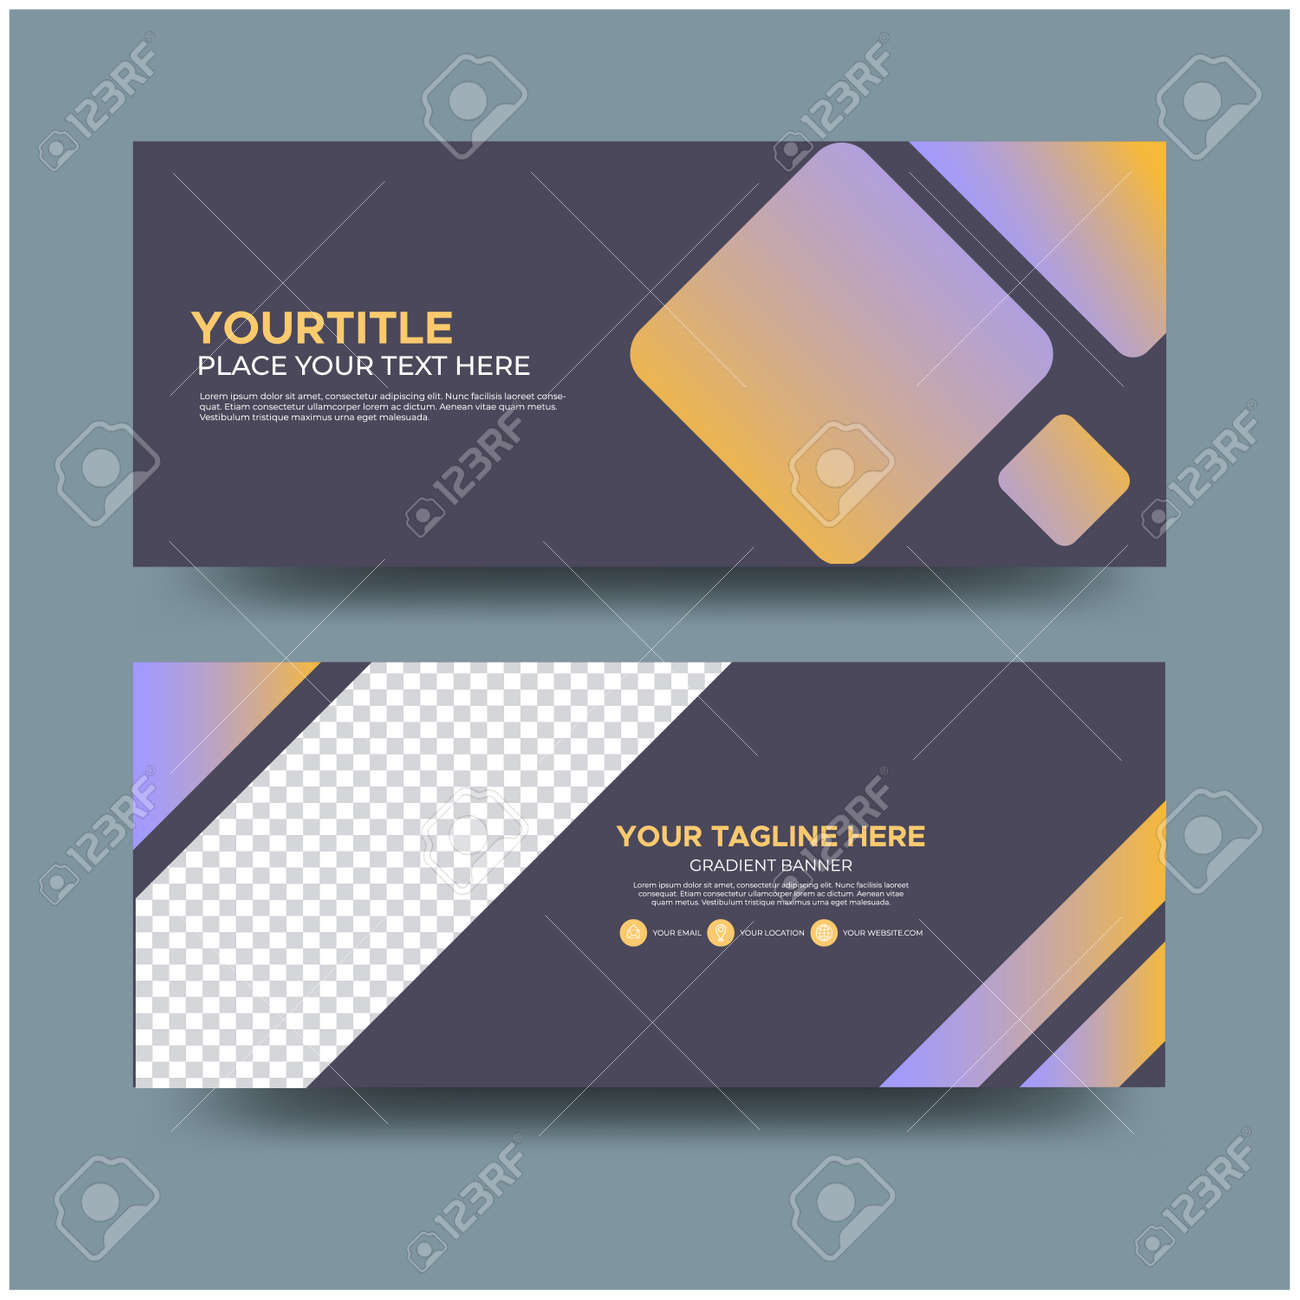 Minimalist gradient banner template, Easy editable can be used for many purpose. - 143265005